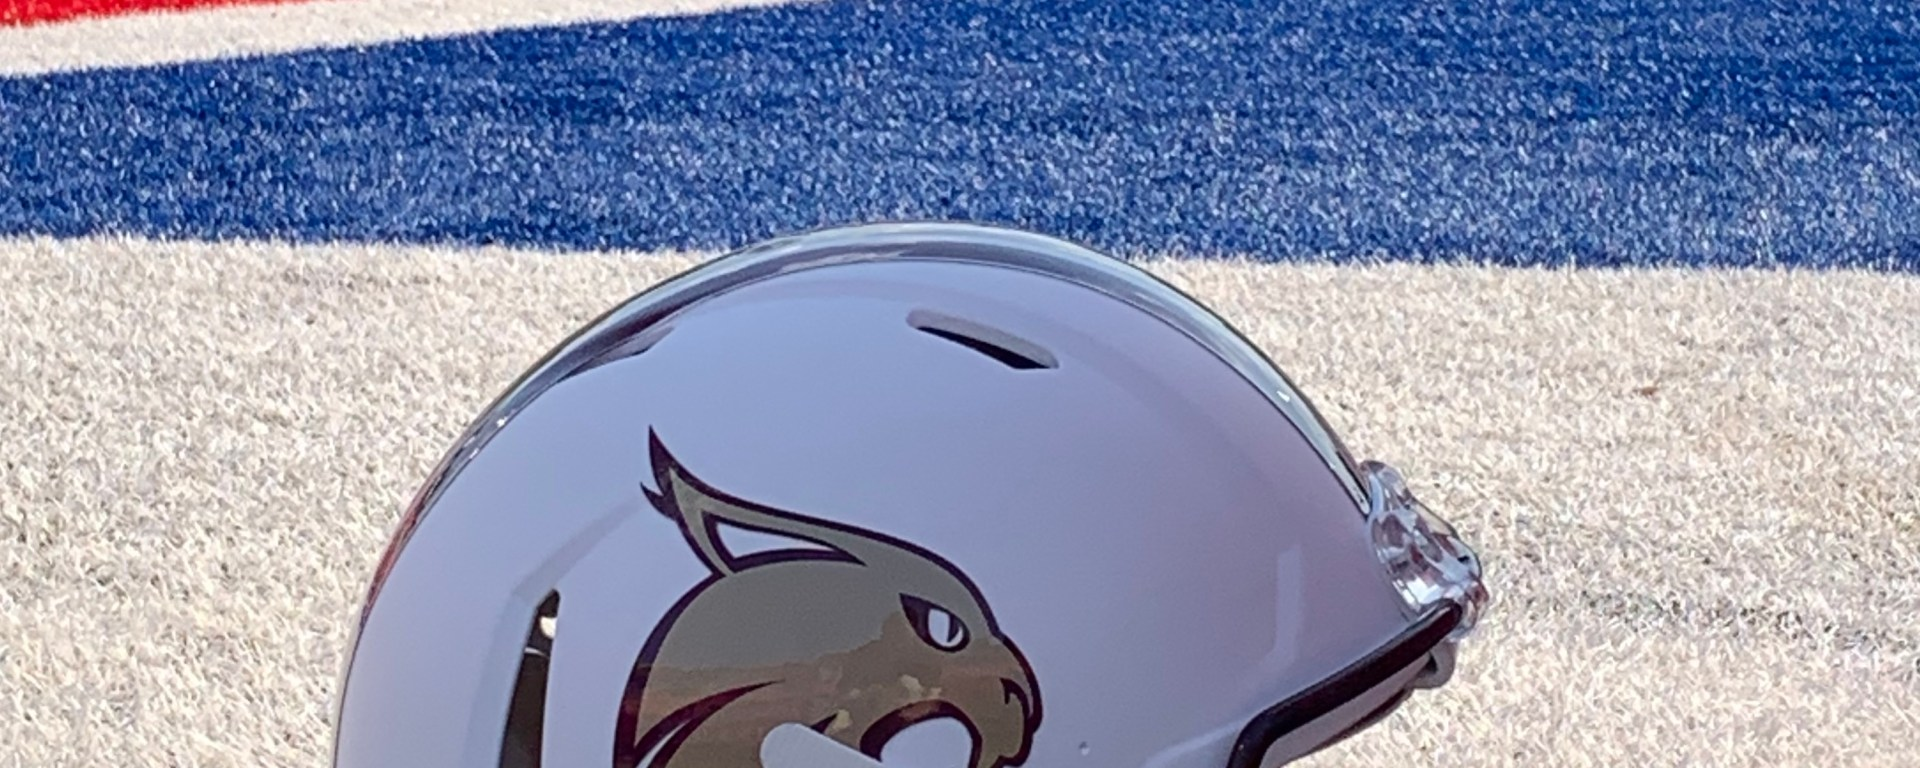 A white football helmet on the field with red, white, and blue painted turf